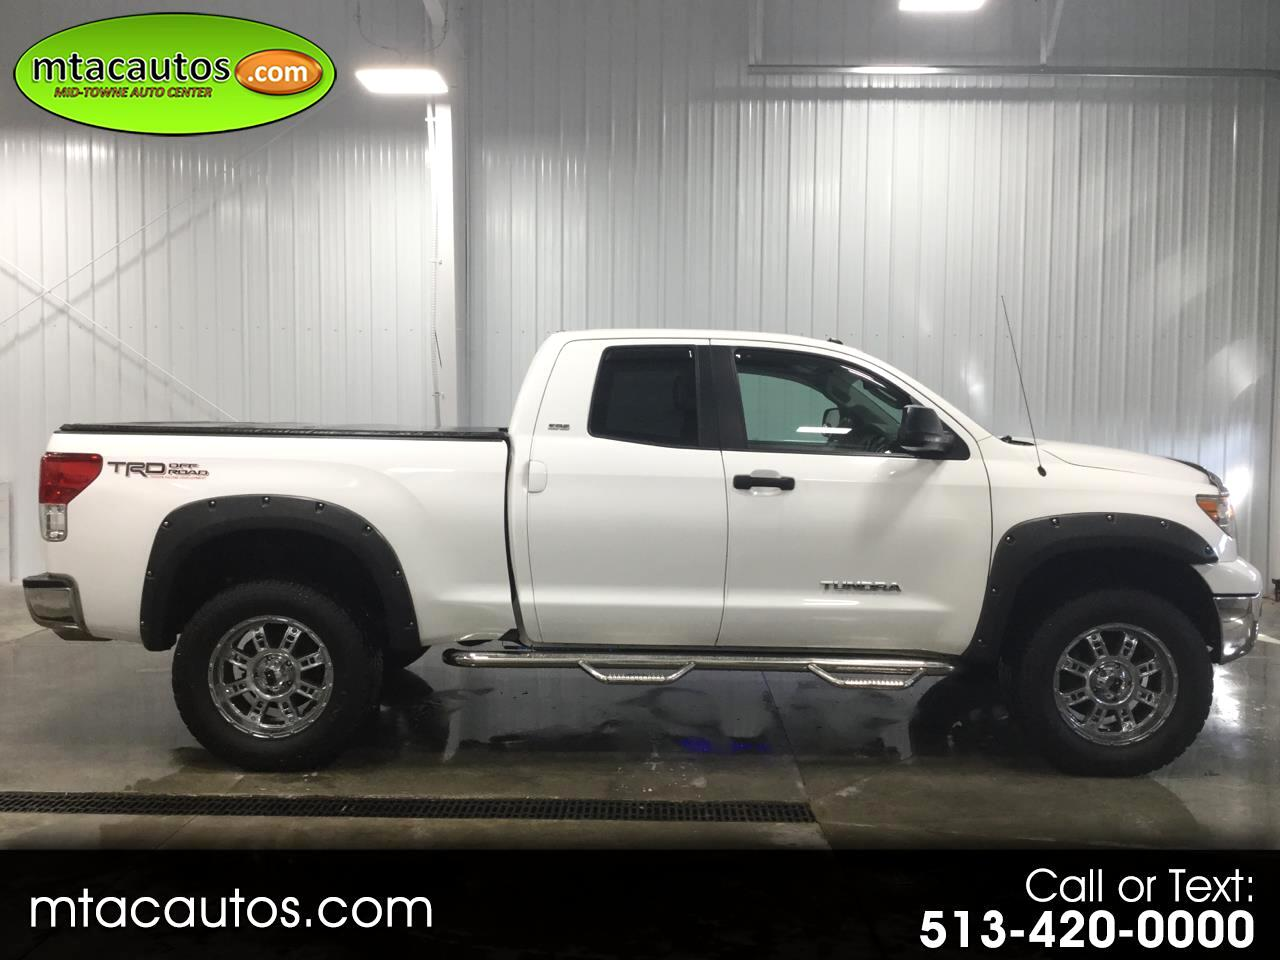 2013 Toyota Tundra Double Cab TRD 4WD